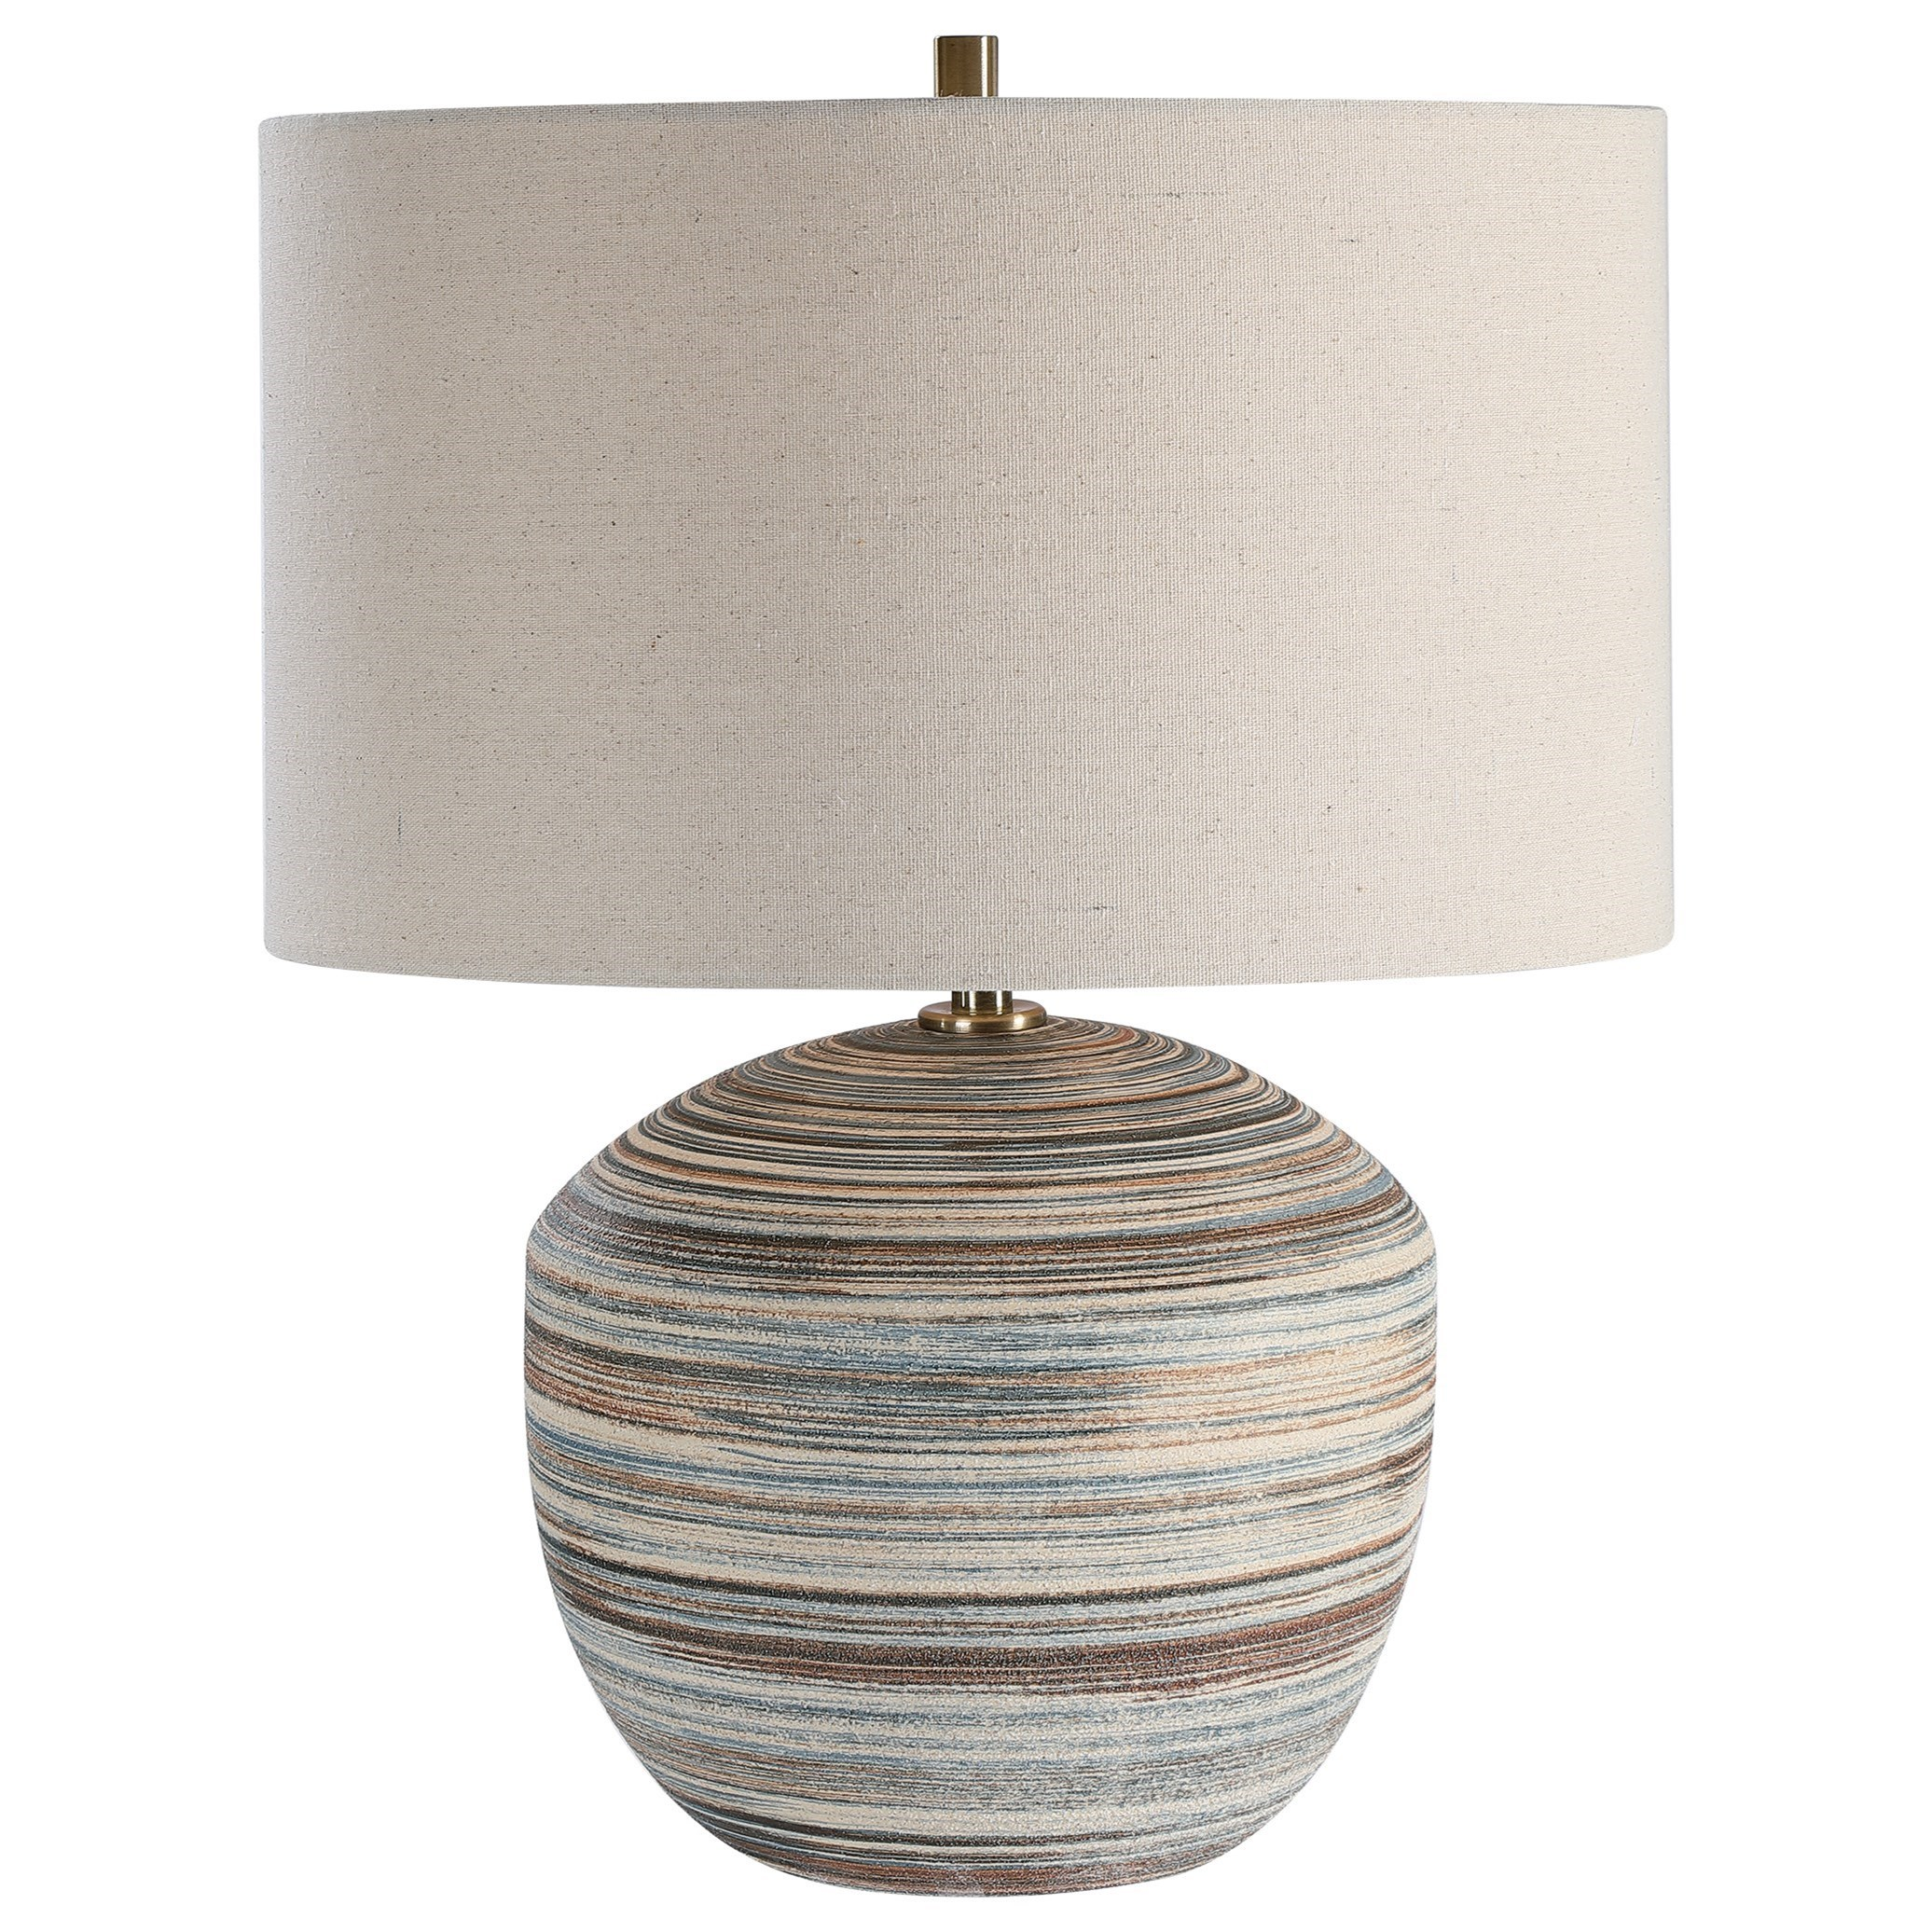 Accent Lamps Prospect Striped Accent Lamp by Uttermost at Sprintz Furniture